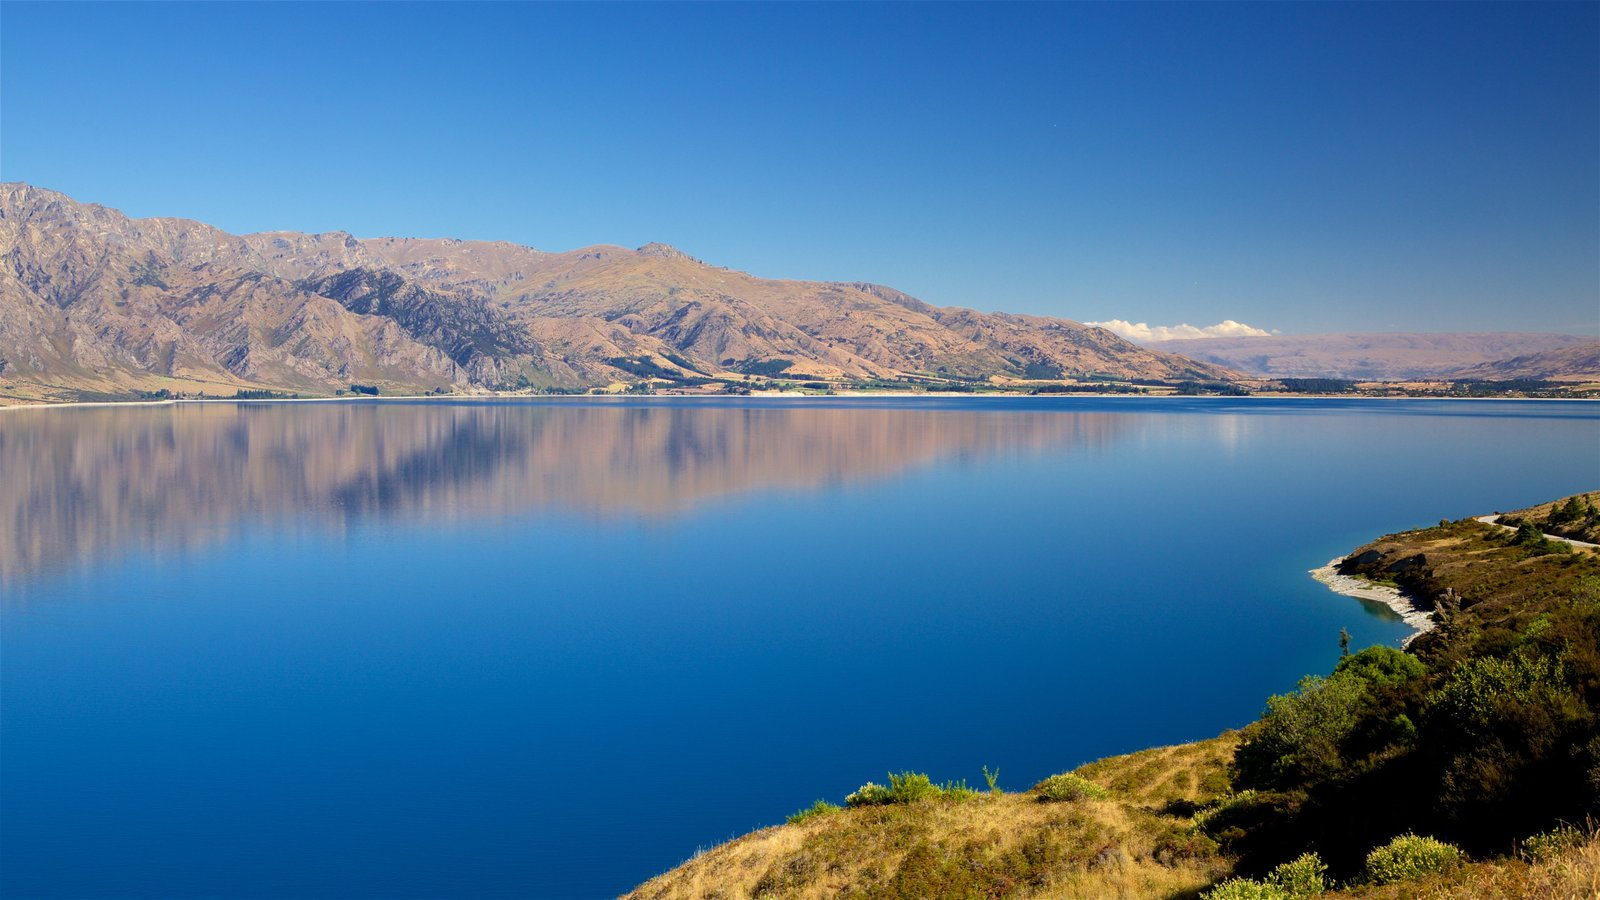 Lake Hawea featuring a lake or waterhole and mountains